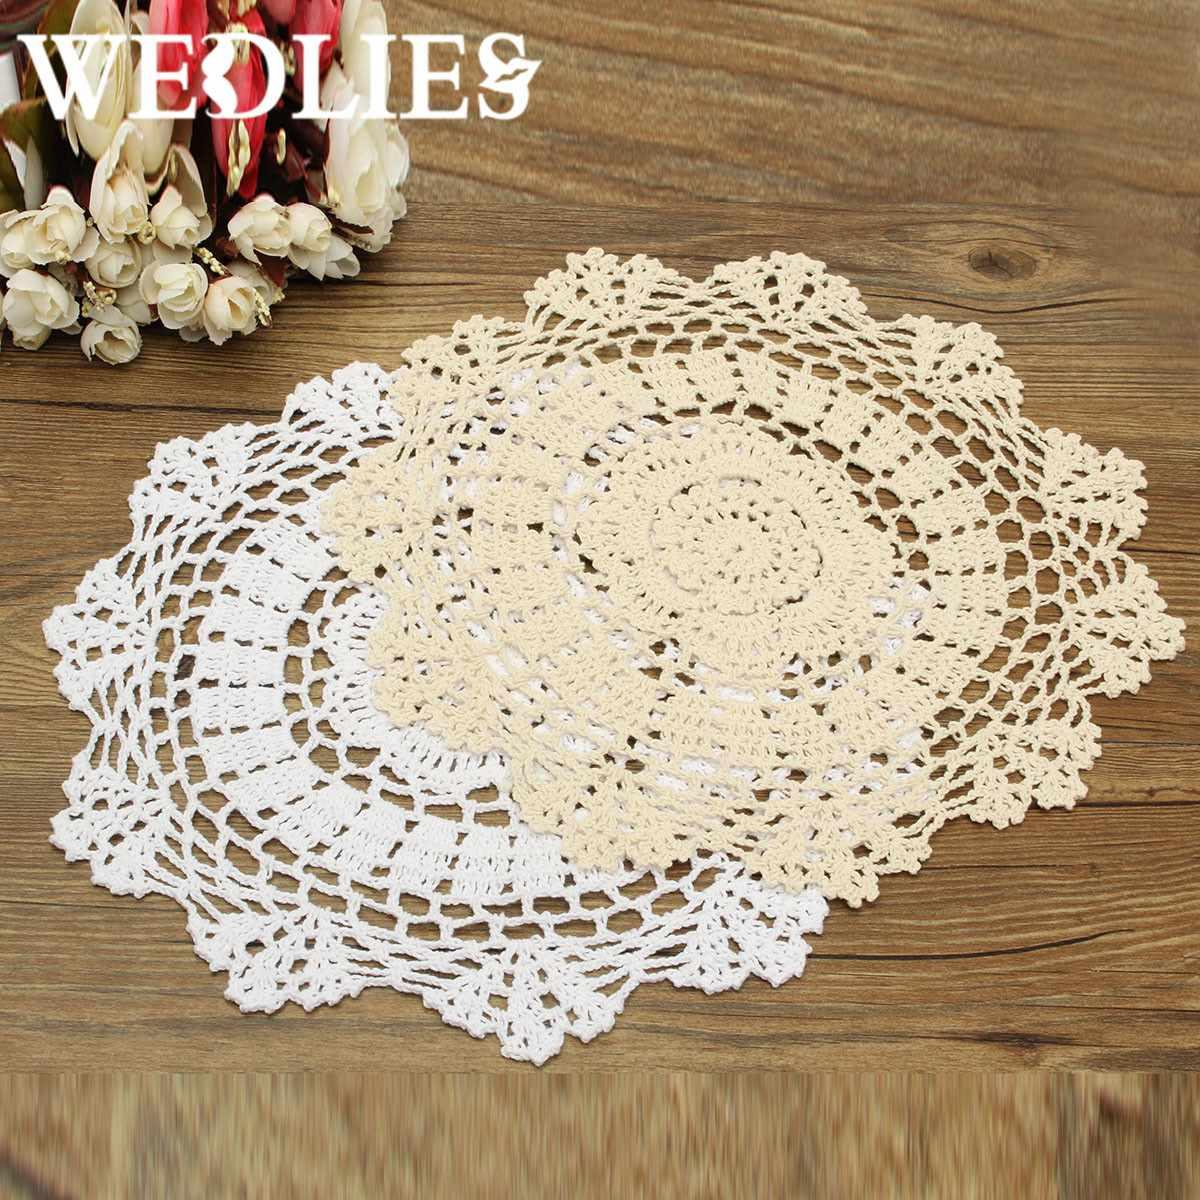 Whole Round Retro Crochet Lace Doilies Fl Placemat Coasters Home Coffee Table Design Decorative Crafts Textiles 30cm Craft Contemporary